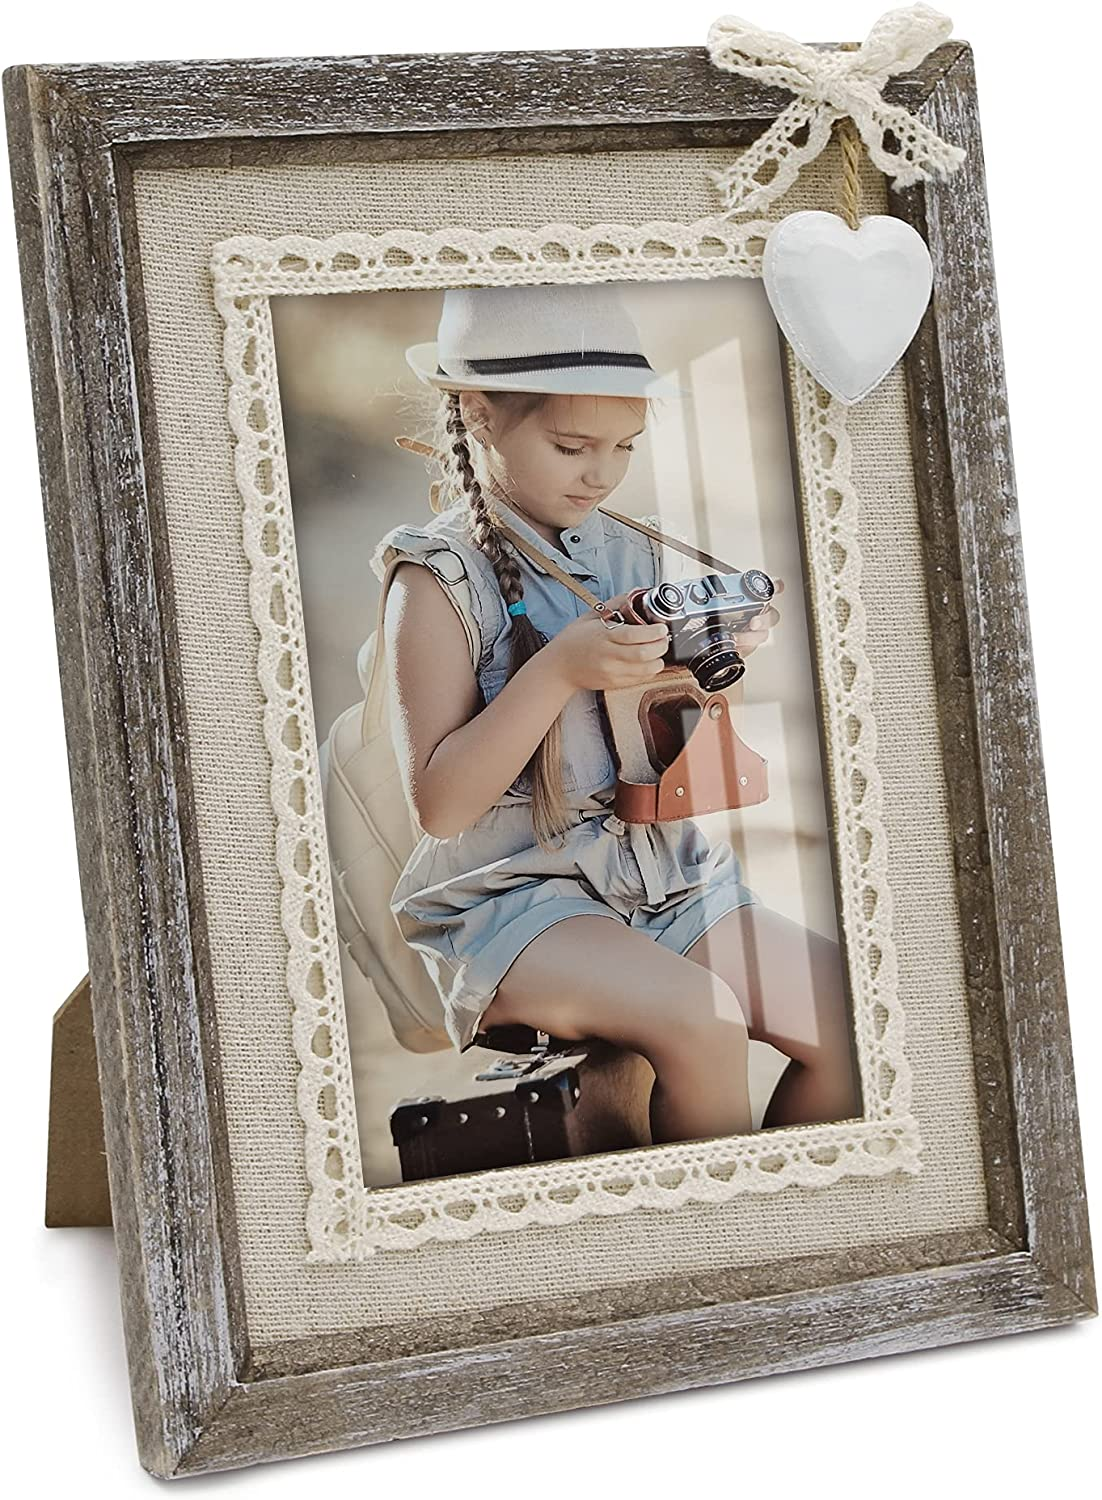 Beitly Art 4x6 Rustic Picture Frames Distressed Wood Cute Heart Love Solid Wooden Photo Frame Set Lace Bow Glass Shabby Chic Boho Wall Decor Hanging Tabletop Family Kids Baby Mom Wedding Gift